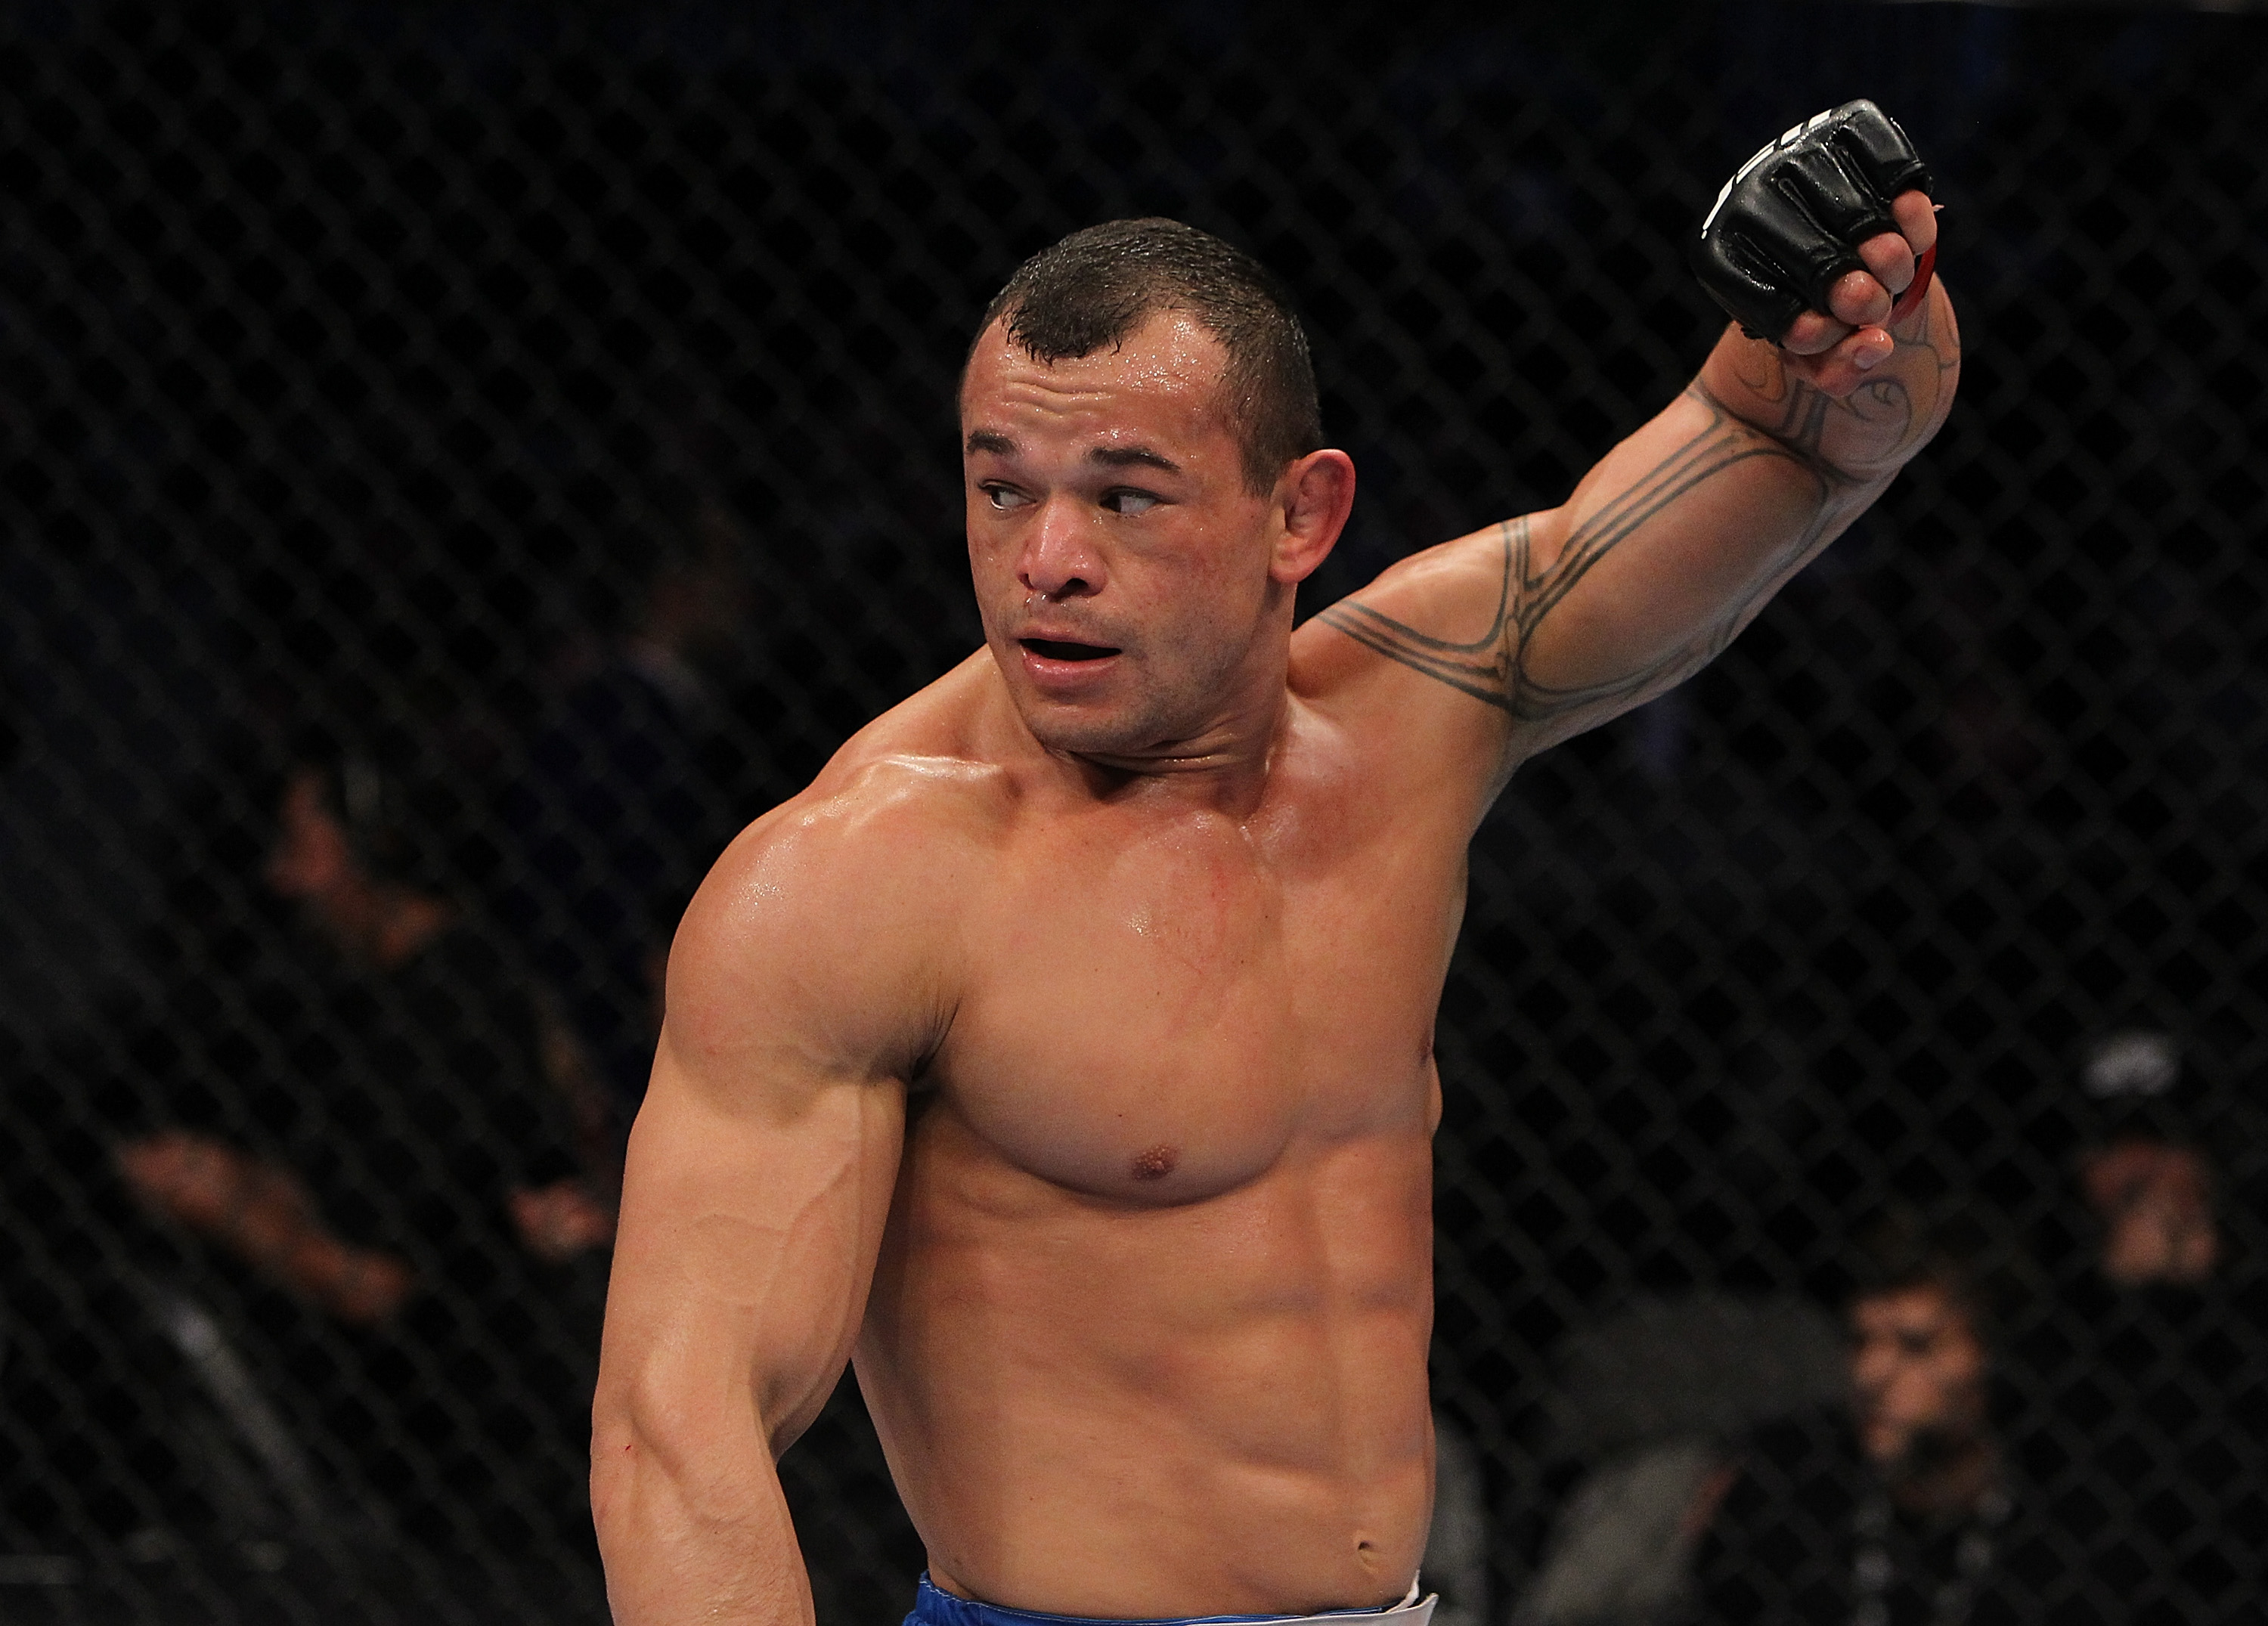 SAN JOSE, CA - NOVEMBER 19: Gleison Tibau celebrates defeating Rafael dos Anjos during an UFC Lightweight bout at the HP Pavilion in San Jose, California on November 19, 2011 in San Jose, California.  (Photo by Josh Hedges/Zuffa LLC/Zuffa LLC via Getty Images)